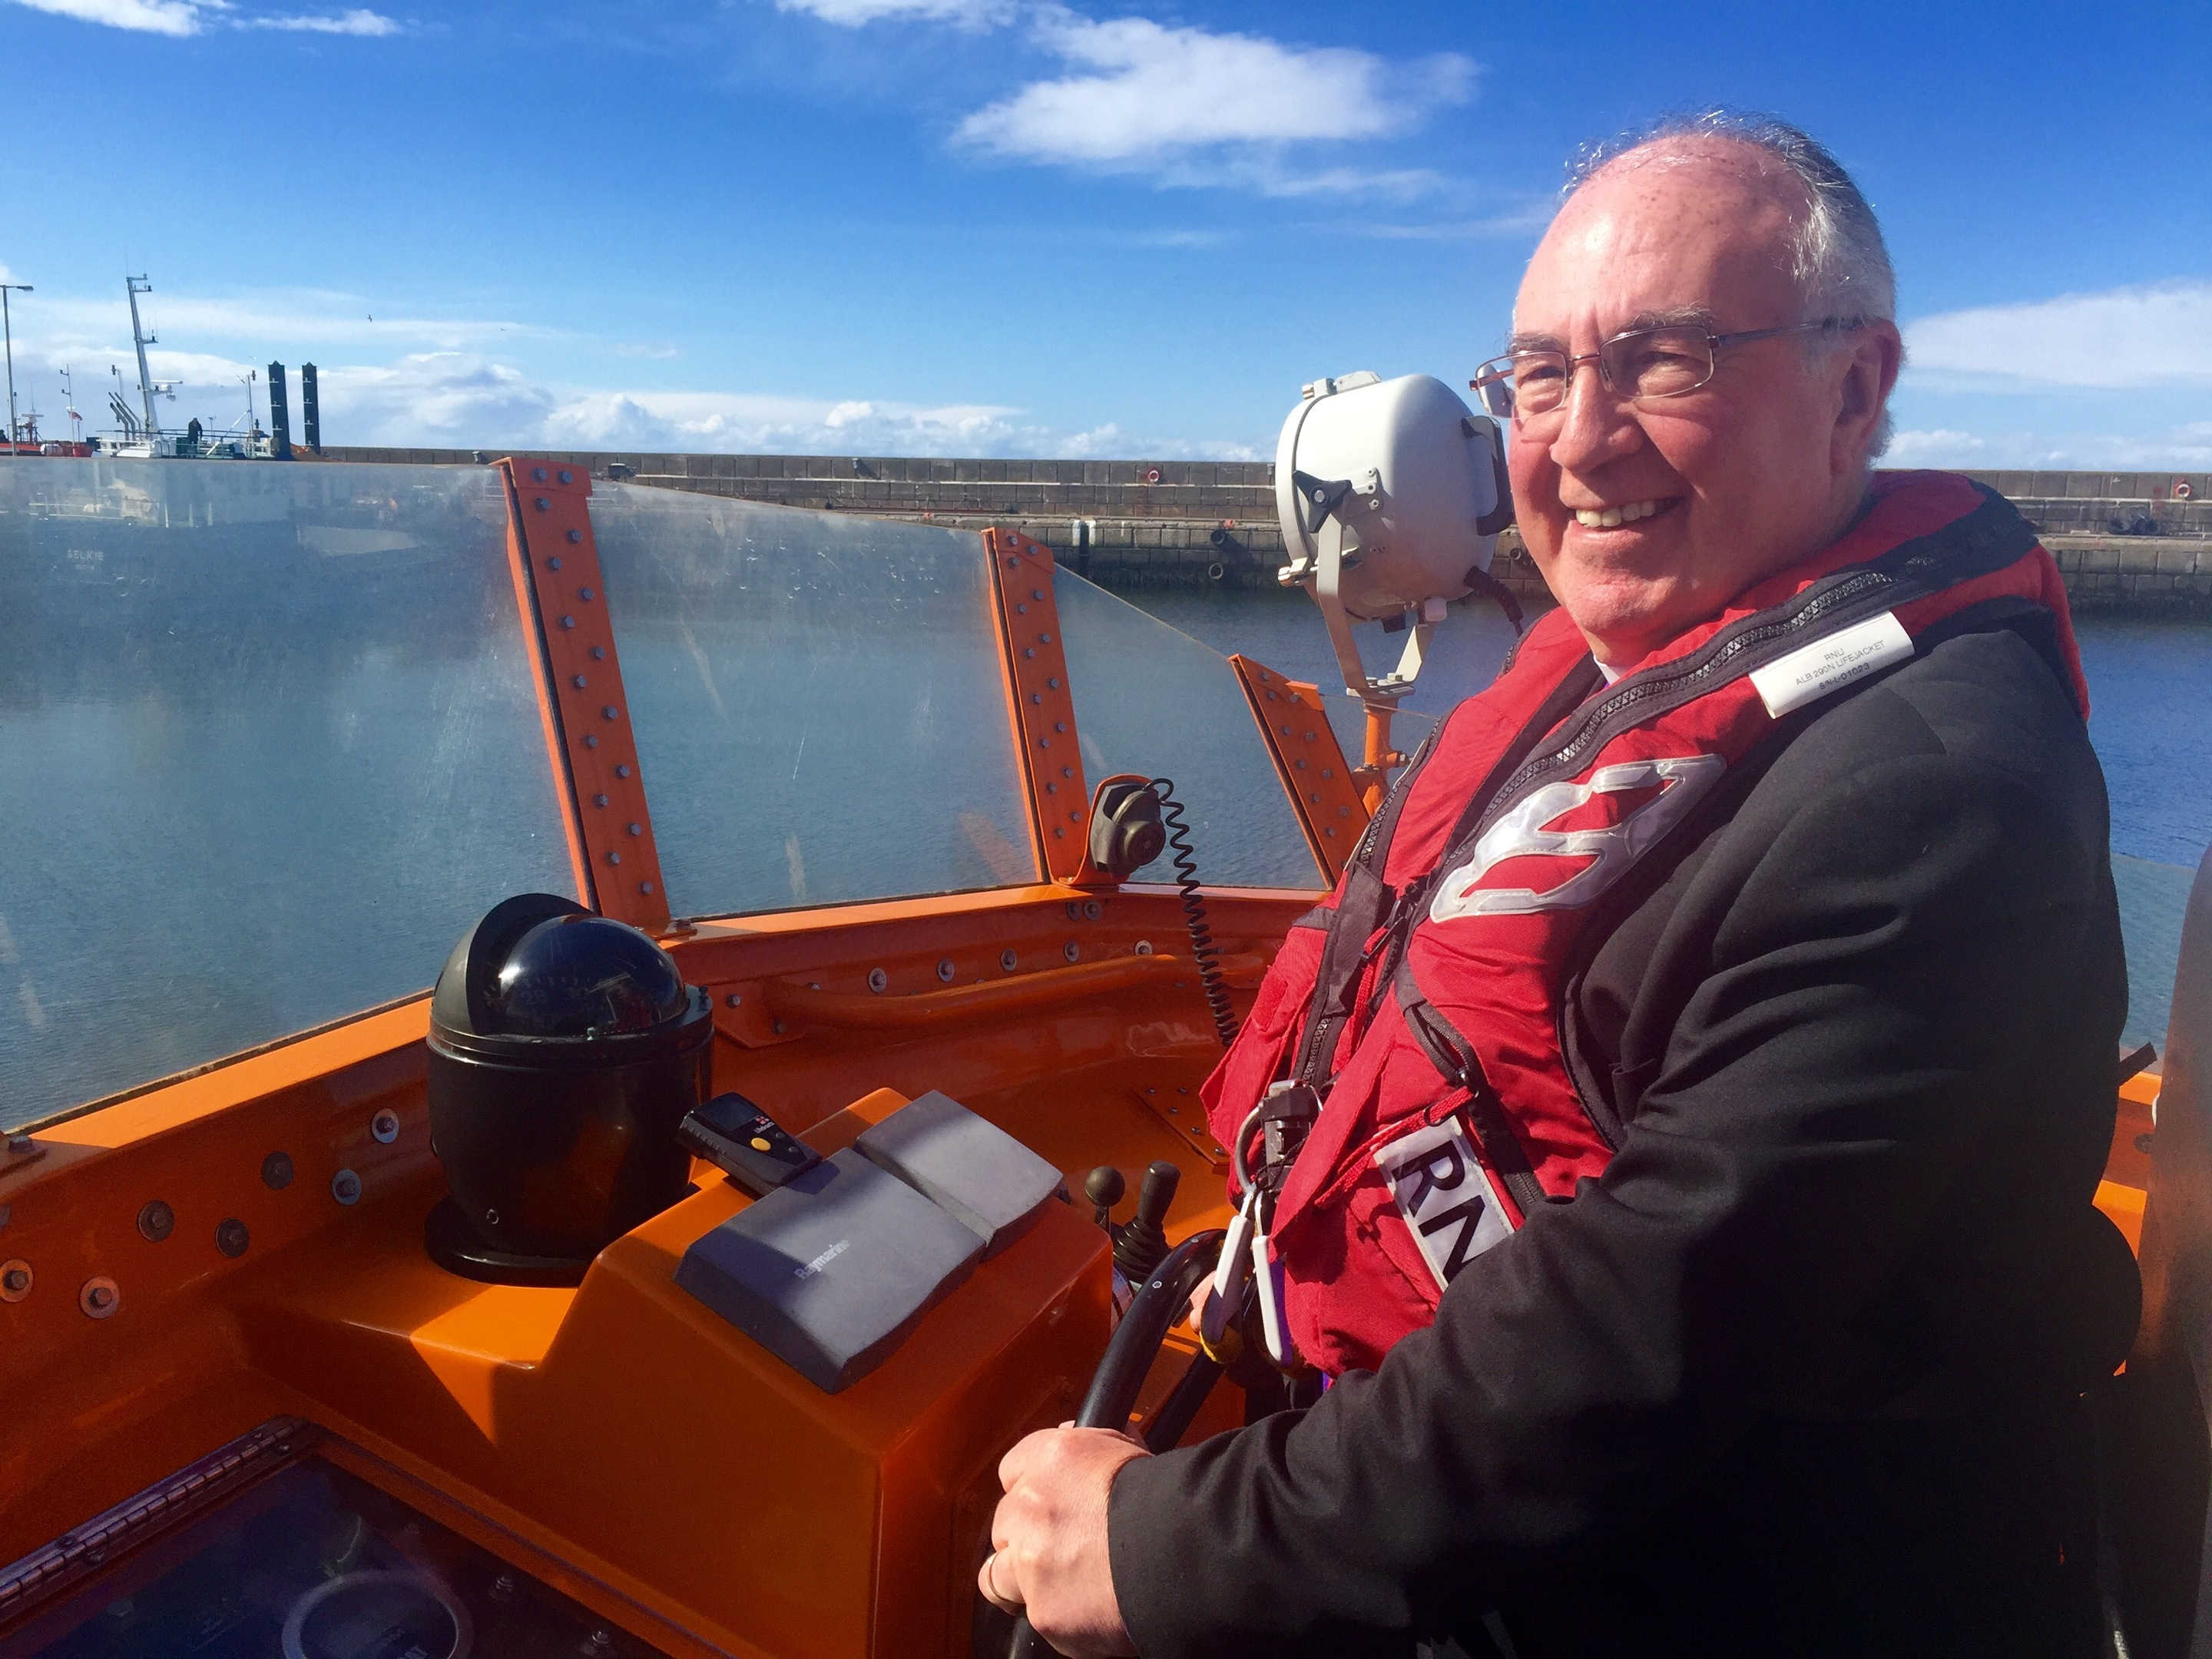 Church of Scotland moderator Rt Rev Dr Angus Morrison at the helm of the lifeboat in Buckie.